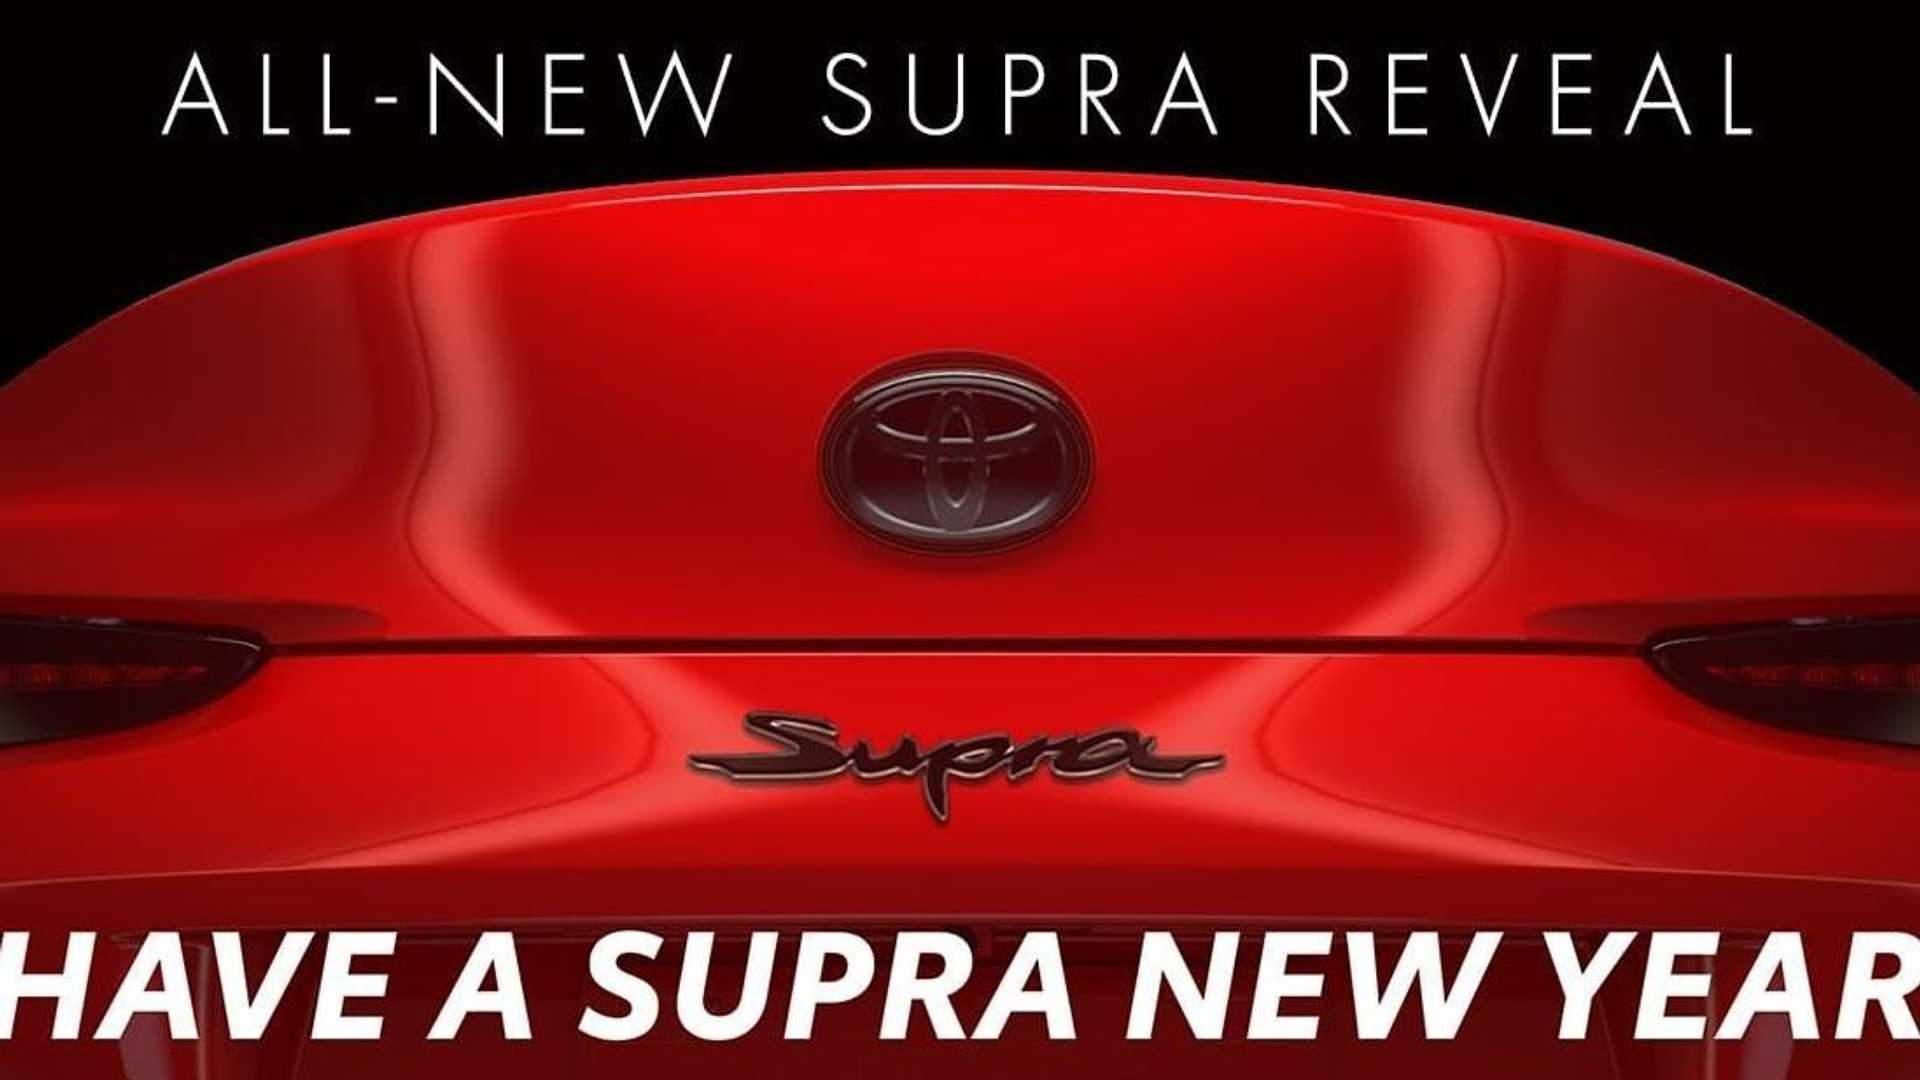 The revived Toyota Supra series will celebrate its international debut at the Detroit Motor Show